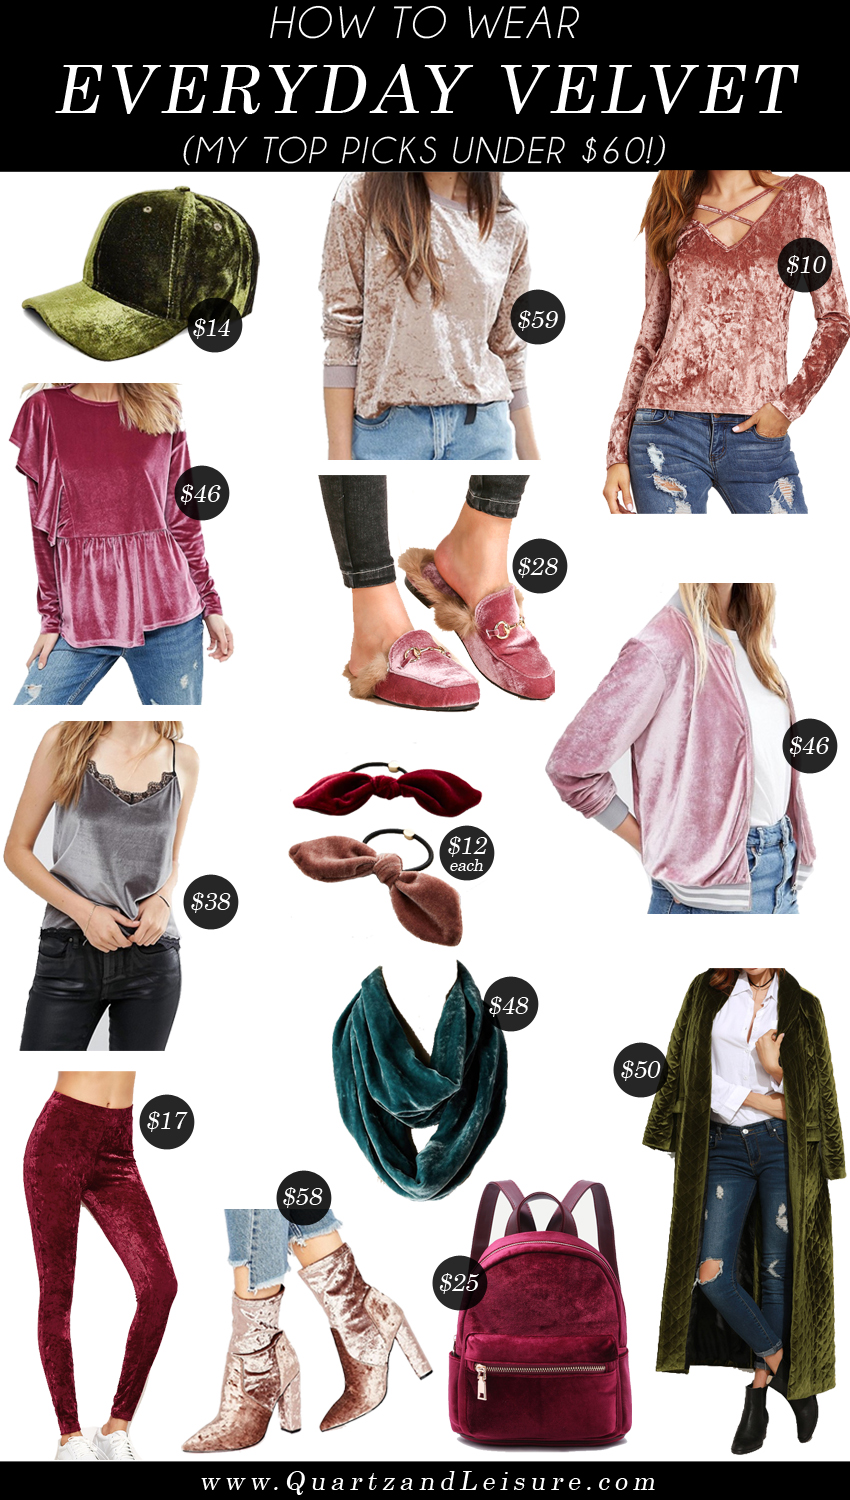 How to Wear Velvet for a Casual Everyday Look - Quartz & Leisure